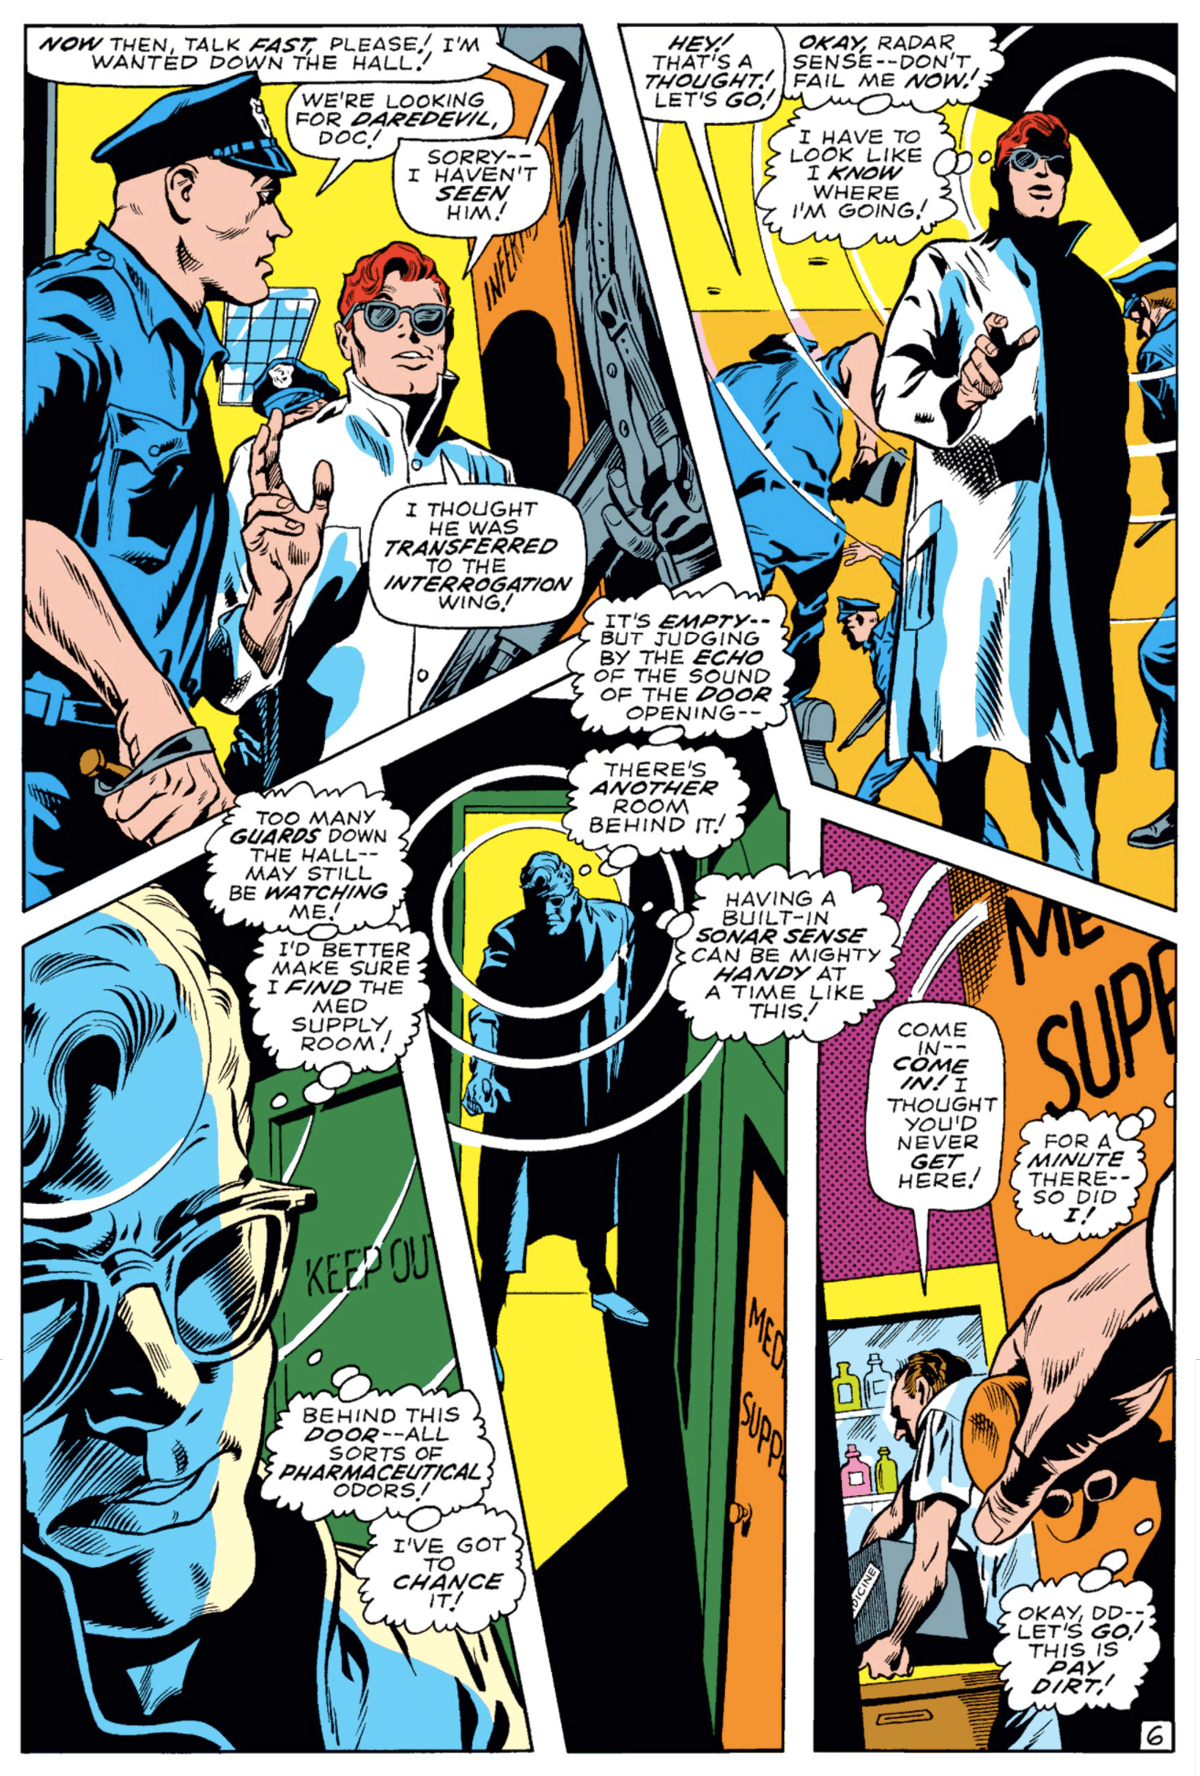 In Daredevil #46, Matt sneaks into a hospital dressed as a doctor and discovers and empty room behind the door he's opening using its echo.